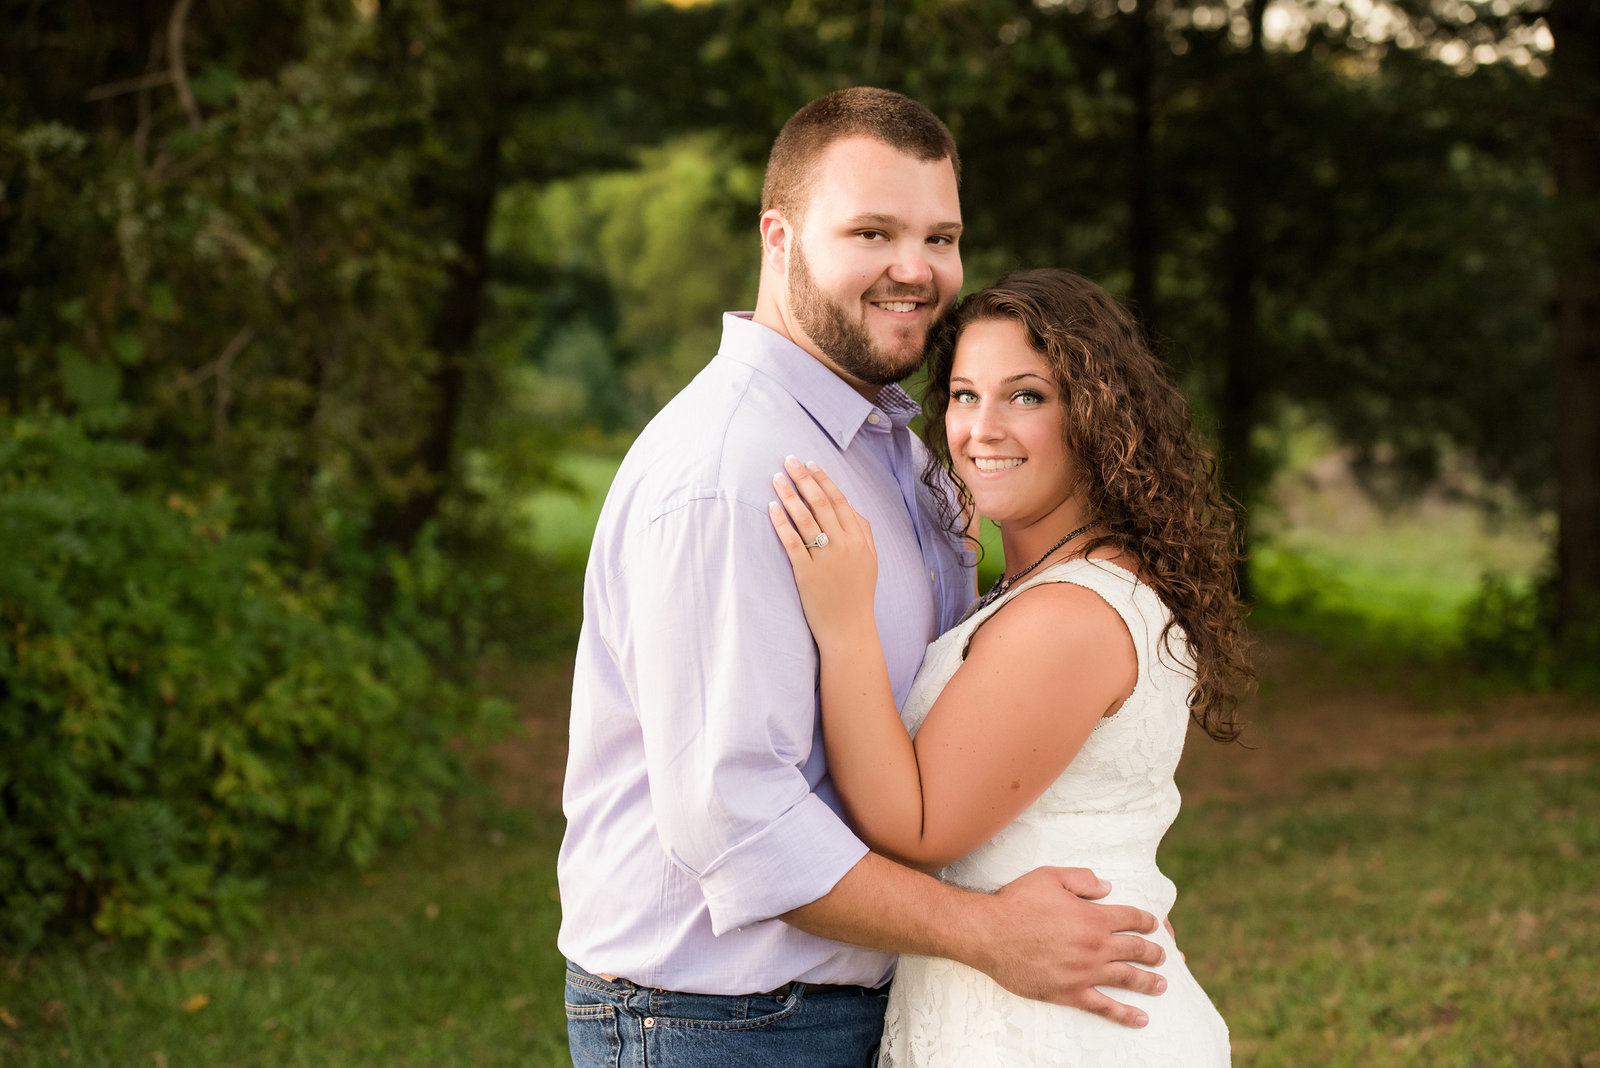 NJ_Rustic_Engagement_Photography150